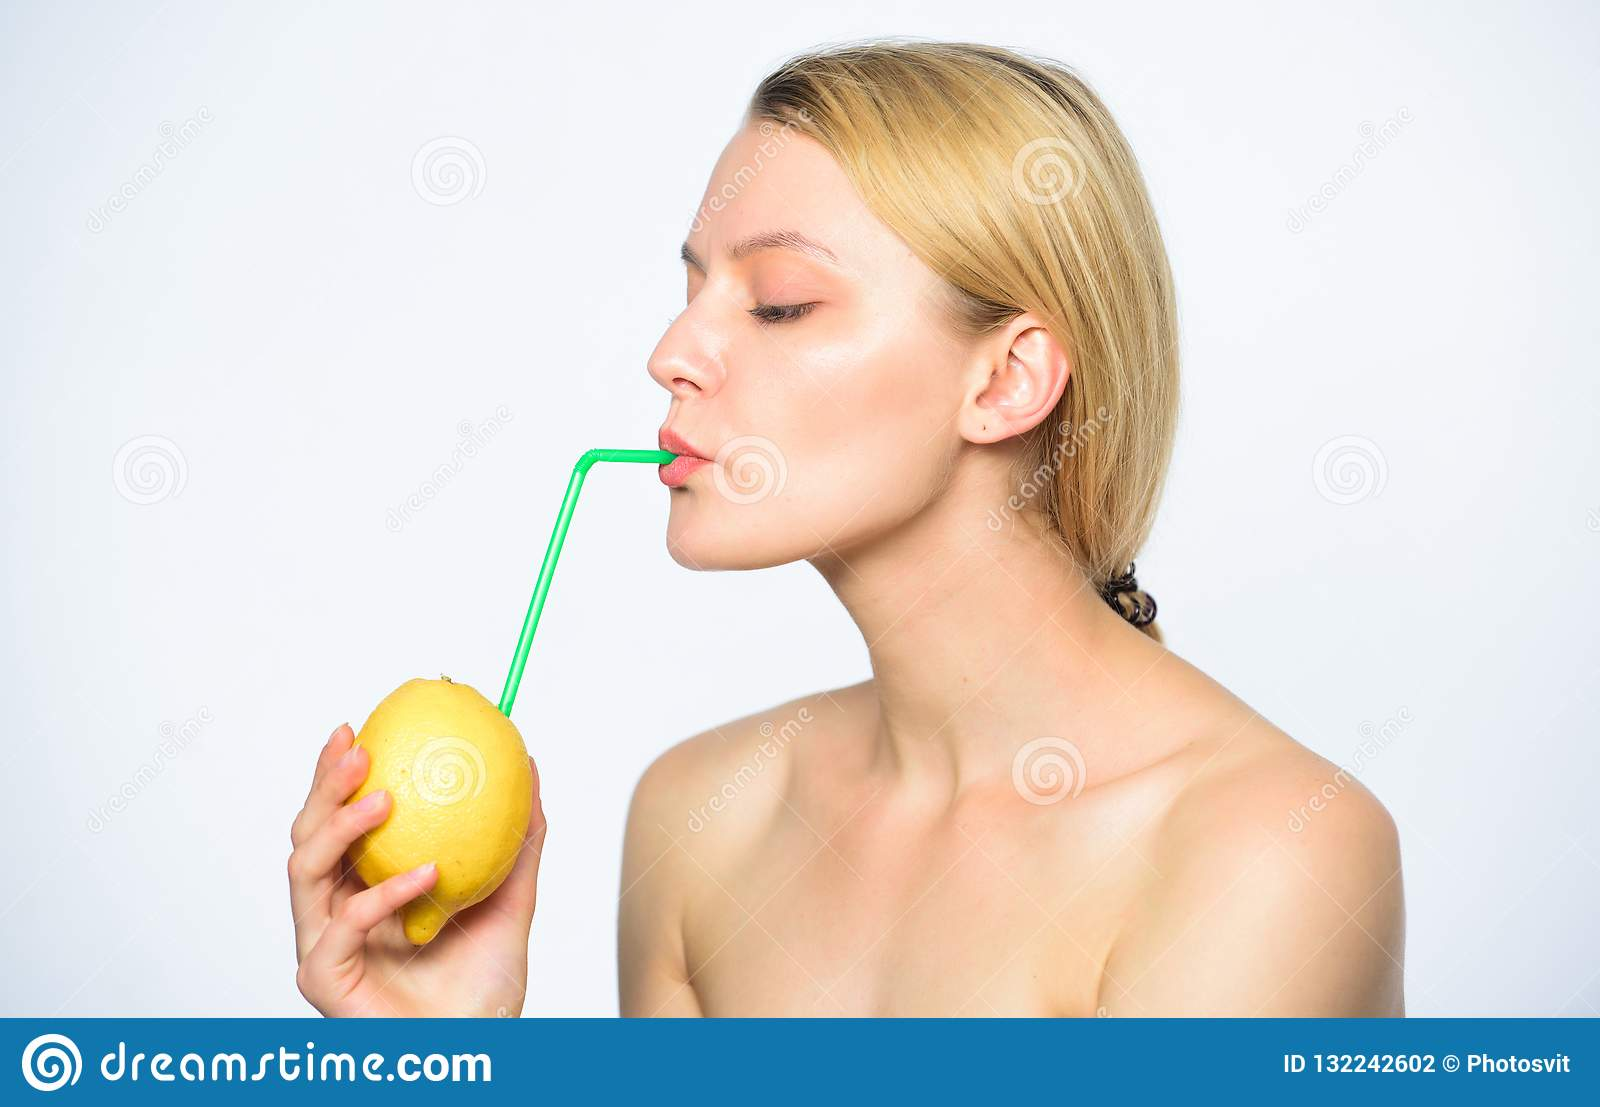 Benefits Of Drinking Lemon Water In Morning Empty Stomach